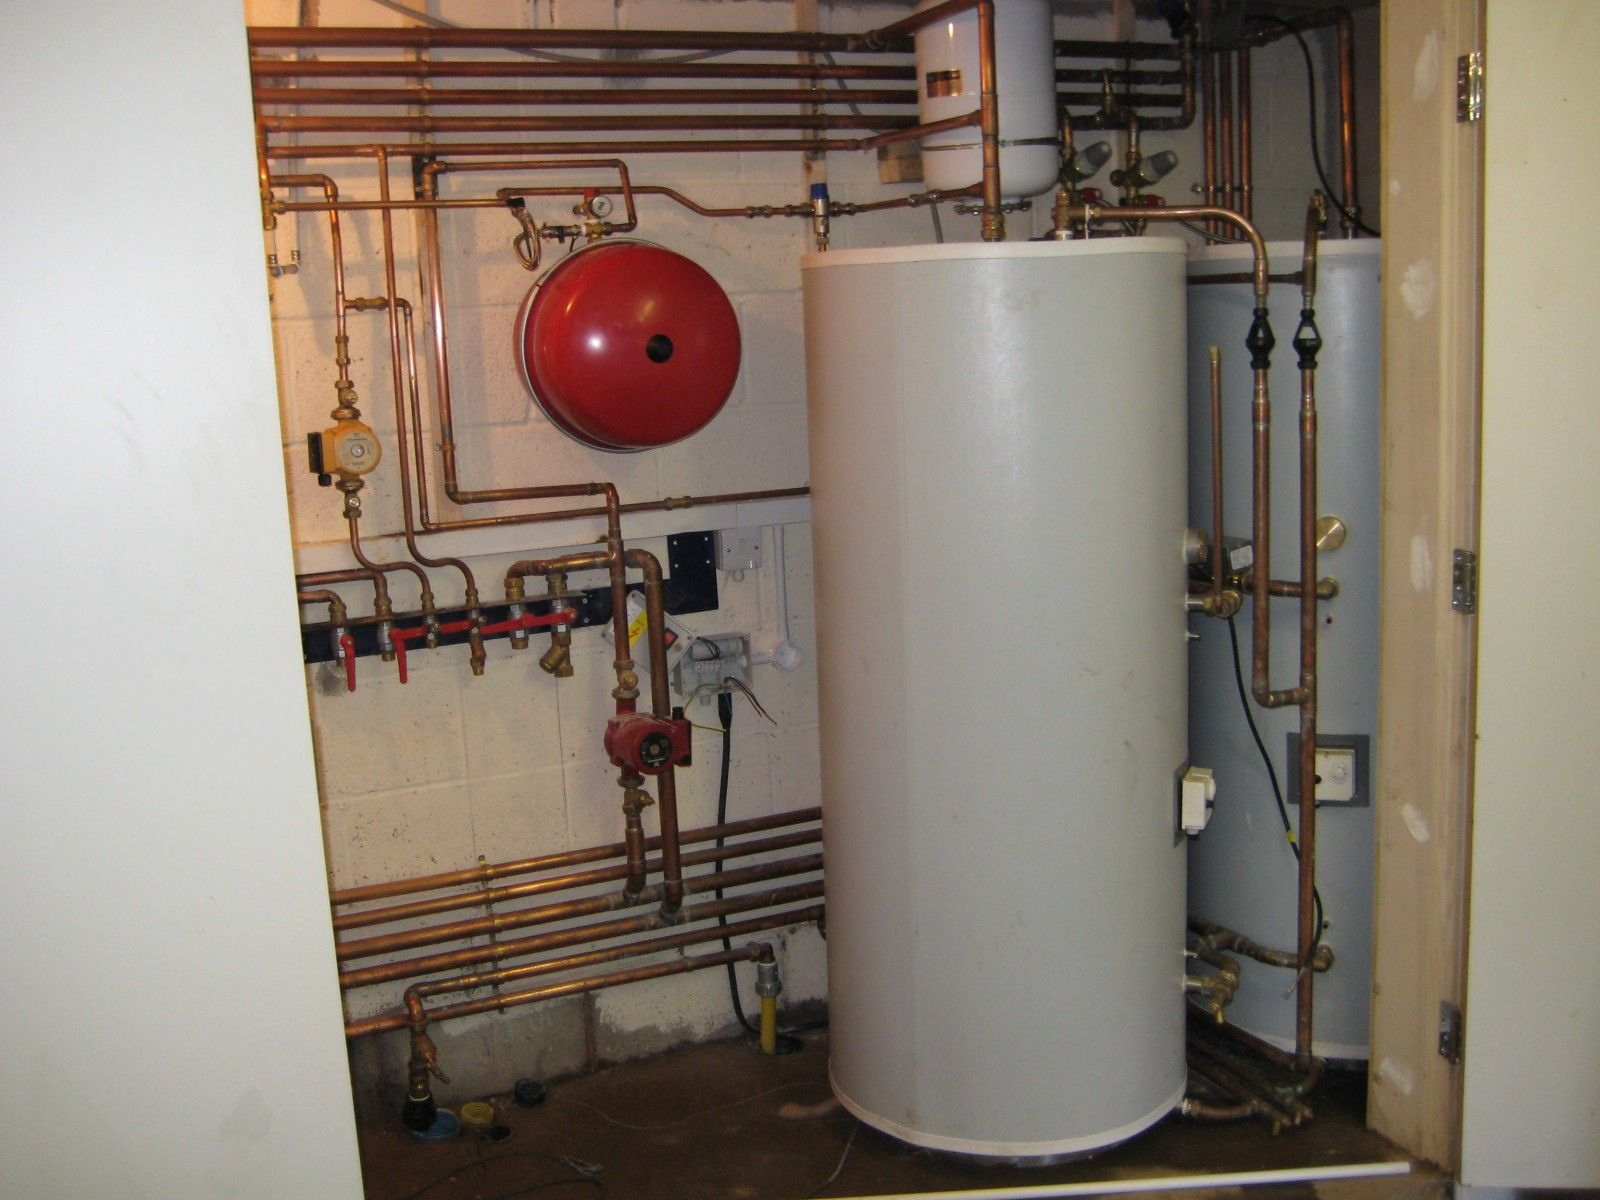 A Quick Guide For Buyers Of Hot Water Systems Nlk Plumbing Water Heating Systems Solar Water Heating Water Systems